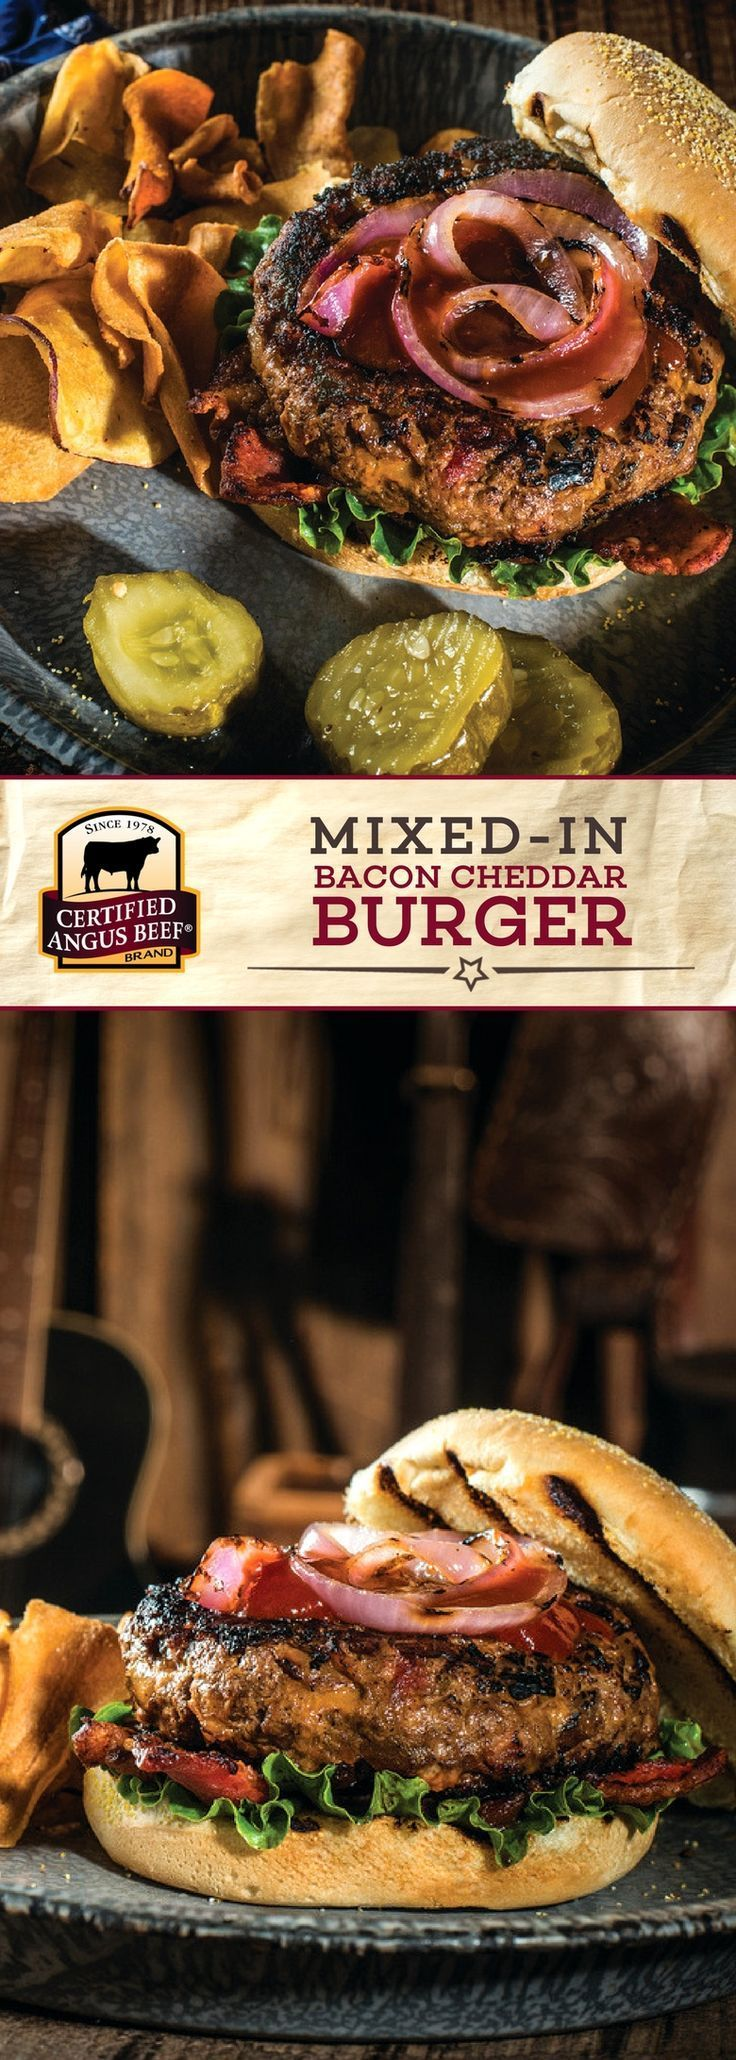 Certified Angus Beef®️️️️️️️️ brand Mixed-in Bacon Cheddar Burger uses the best ground beef for a FLAVORFUL burger! This DELICIOUS recipe is made with a BOLD sauce mix, including barbecue sauce, Worcestershire, and ancho chili powder. Mixing the onions and cheddar right into the beef really makes this burger stand out!  #bestangusbeef #certifiedangusbeef #beefrecipe #easyrecipes #burgertime